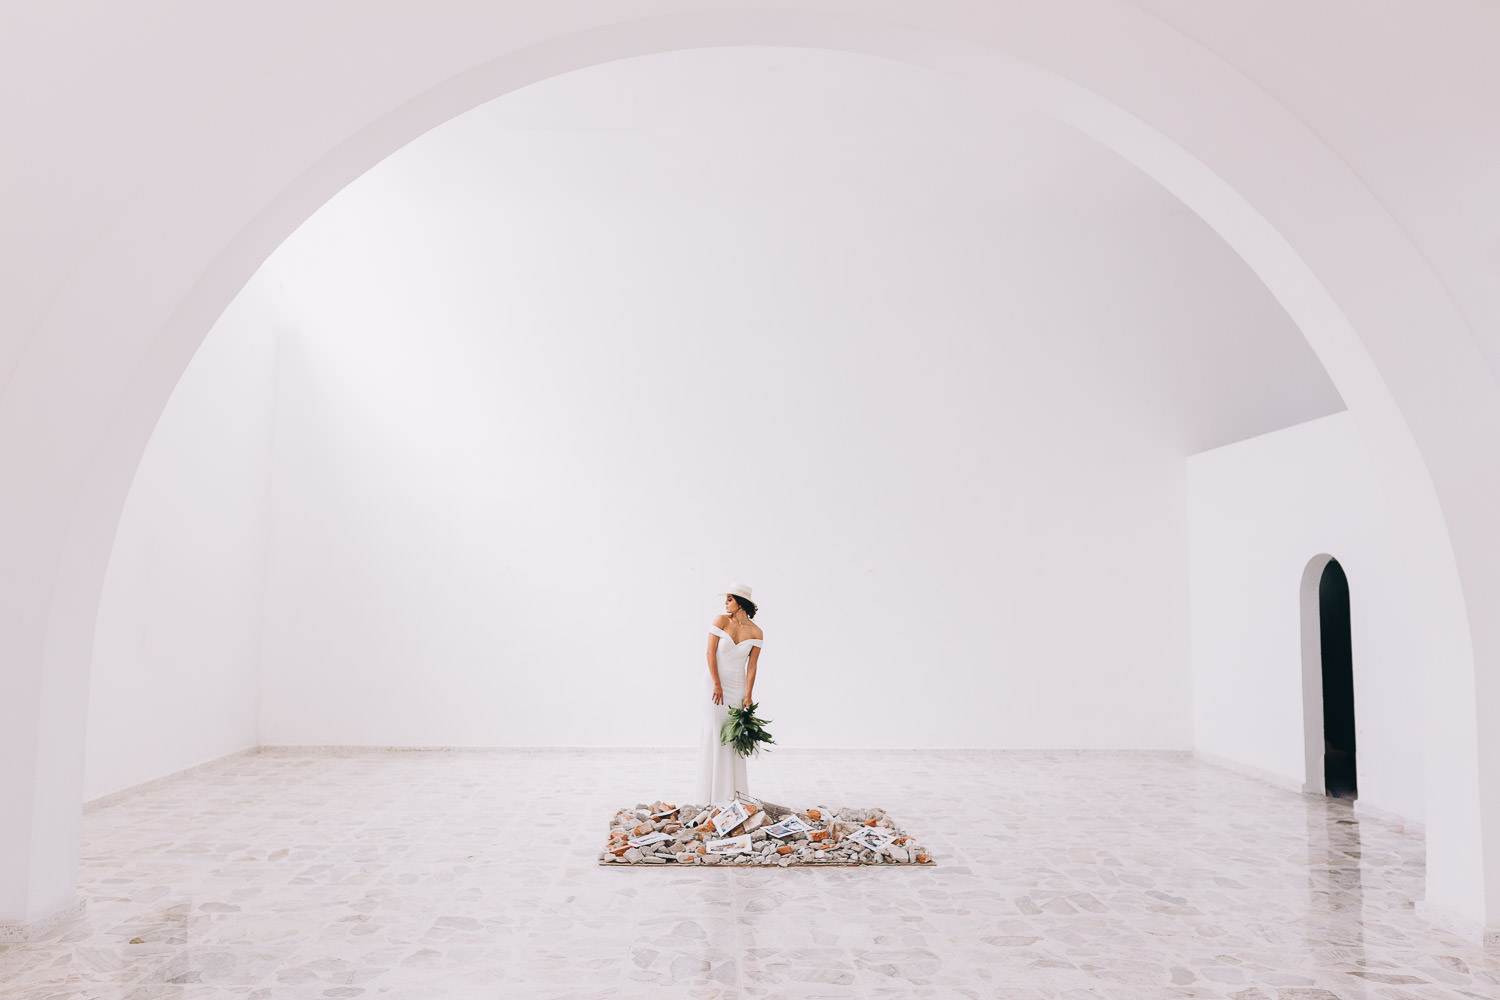 Minimalist wedding in Mexico in a cultural space